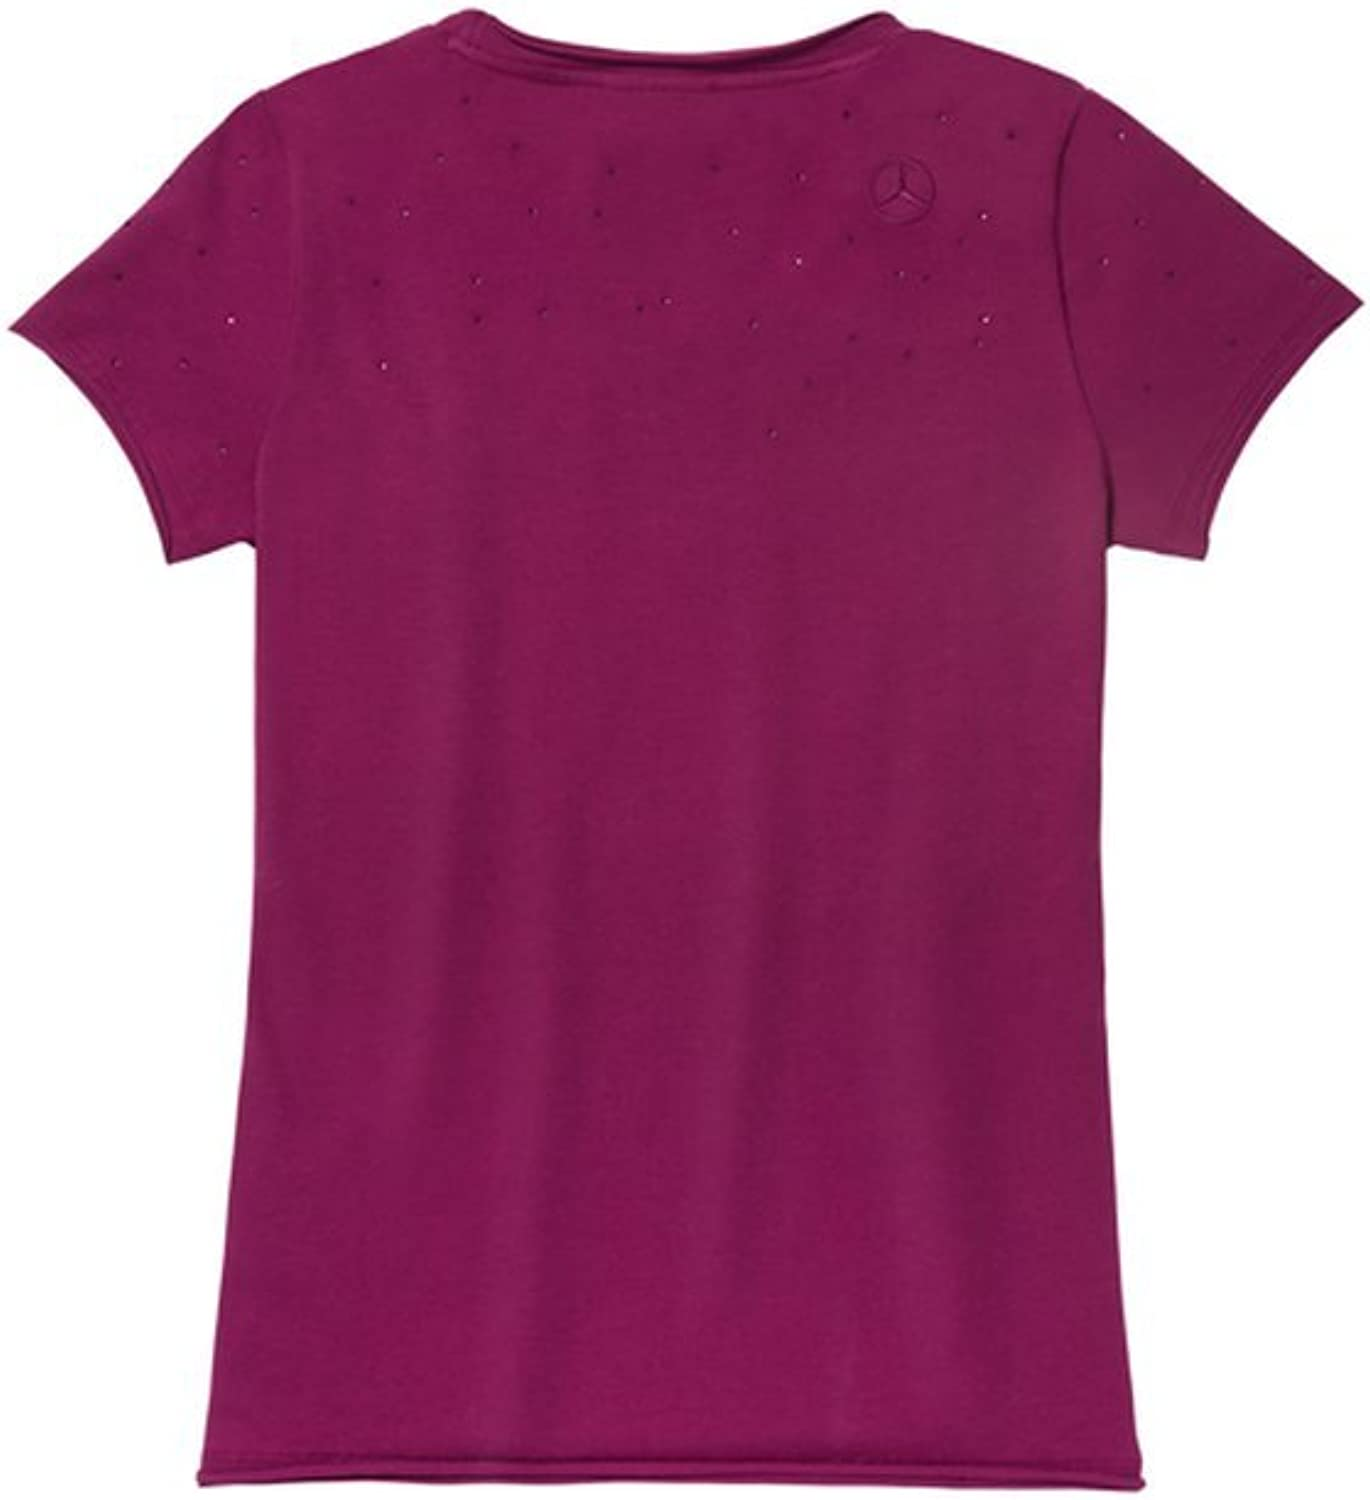 Mercedes Benz Women's TShirt Plum,